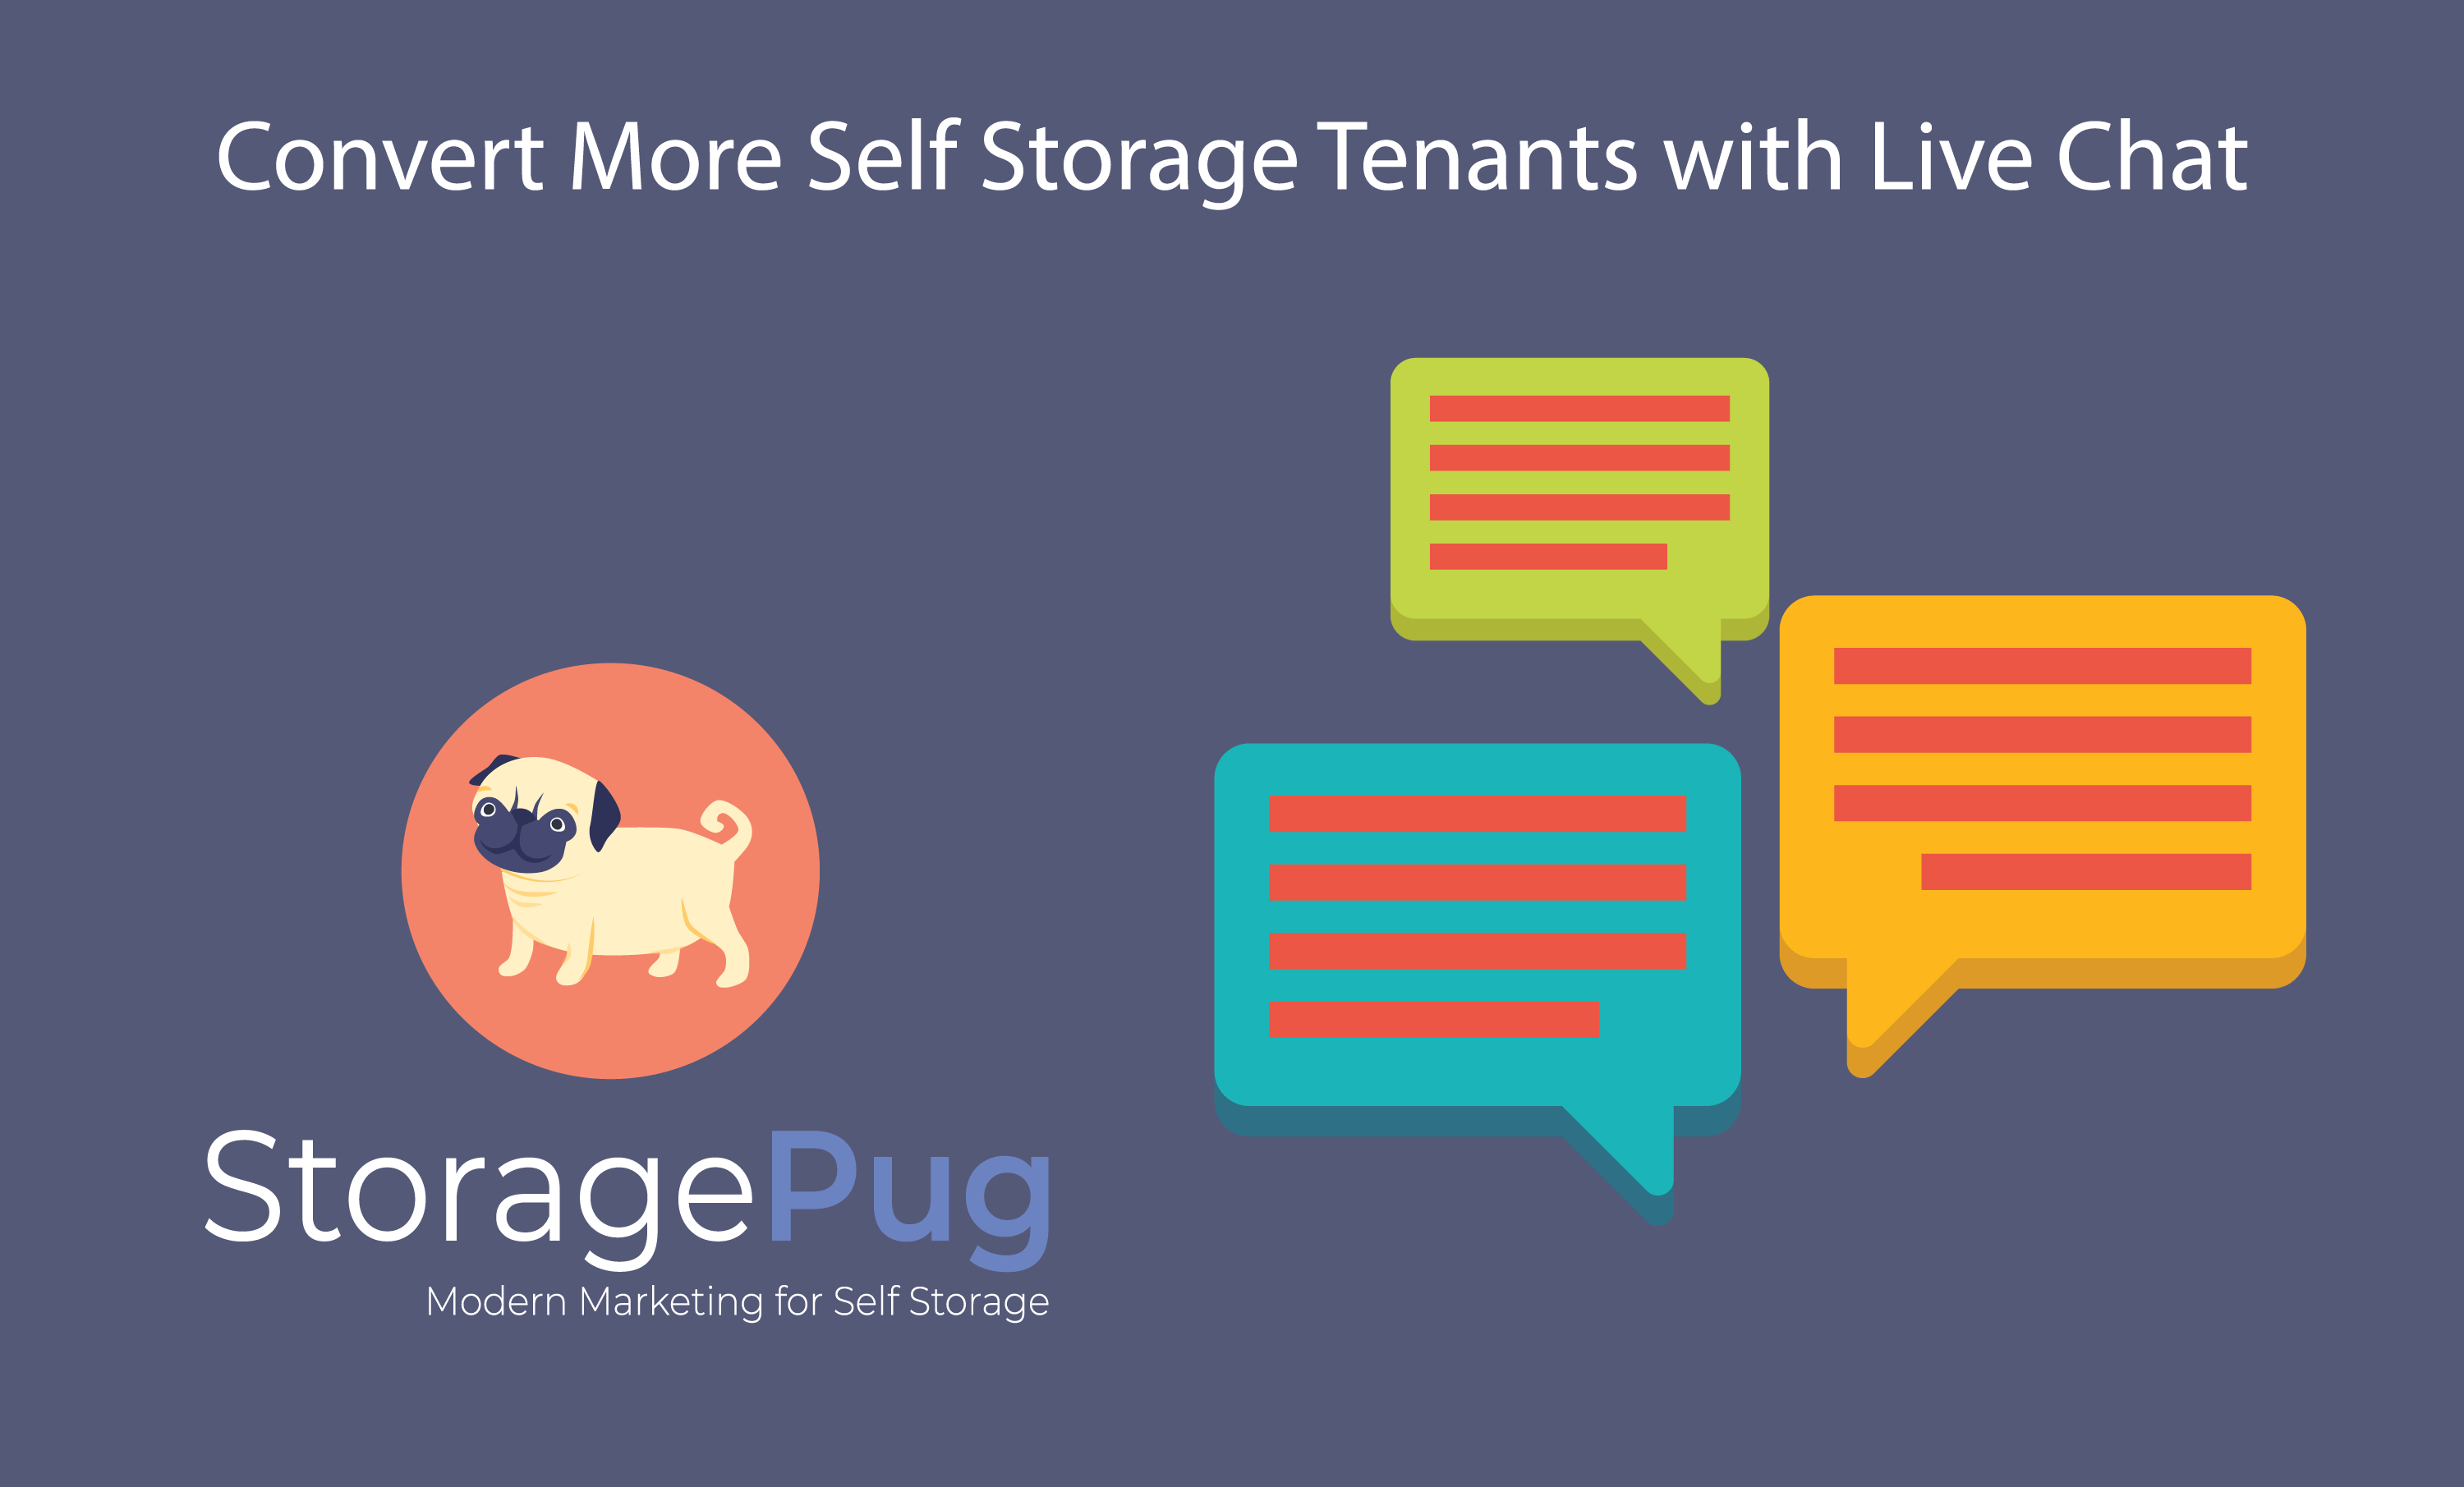 We've all been to websites that use live chat to try to engage with their customers, but is this feature right for your self storage website-